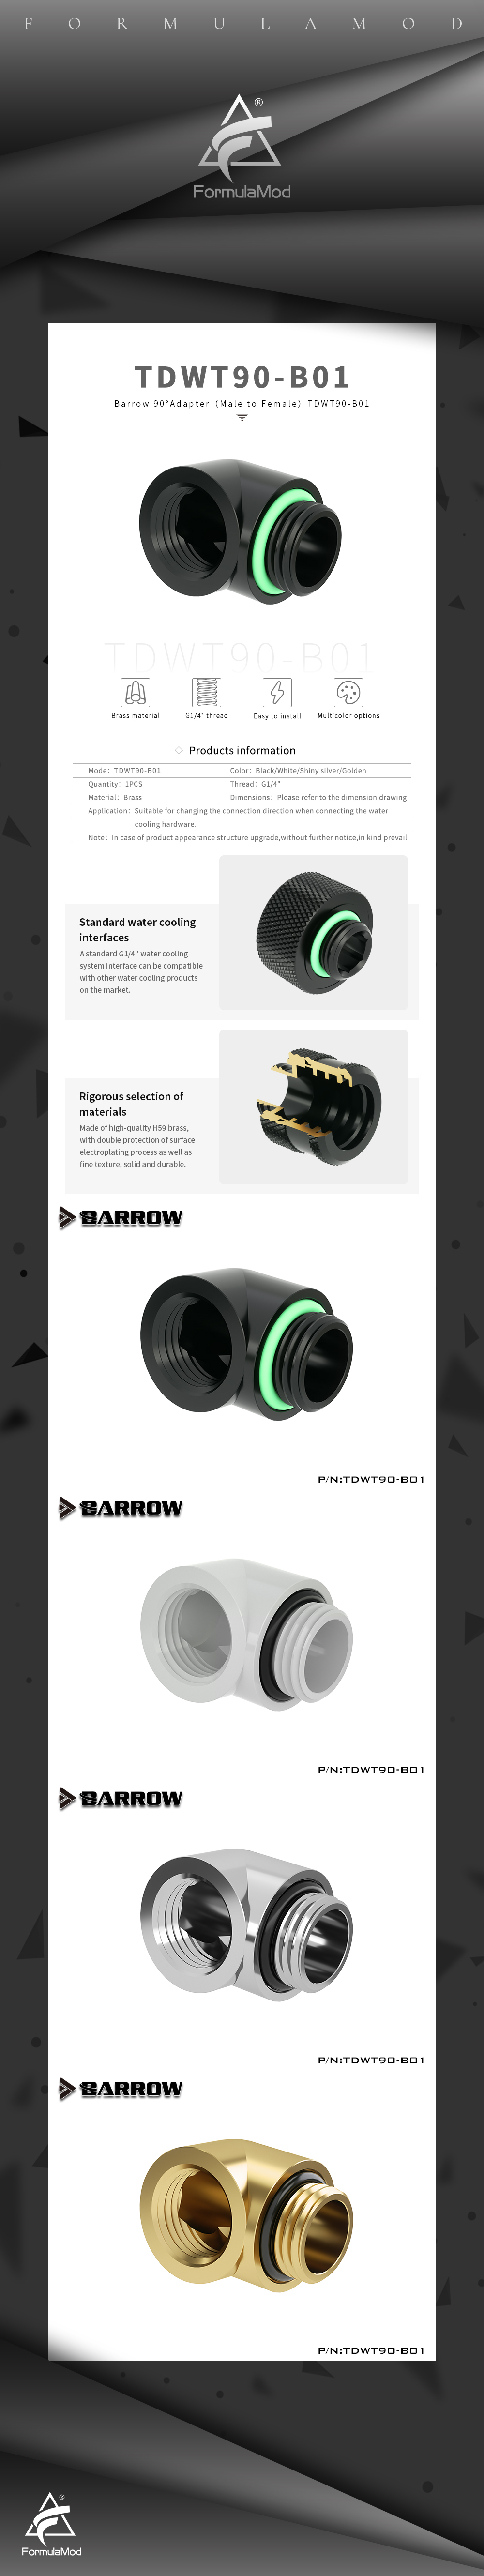 Barrow Brass Black White Silver G1/4'' thread 90 degree Fitting Adapter water cooling Adaptors water cooling fitting TDWT90-B01